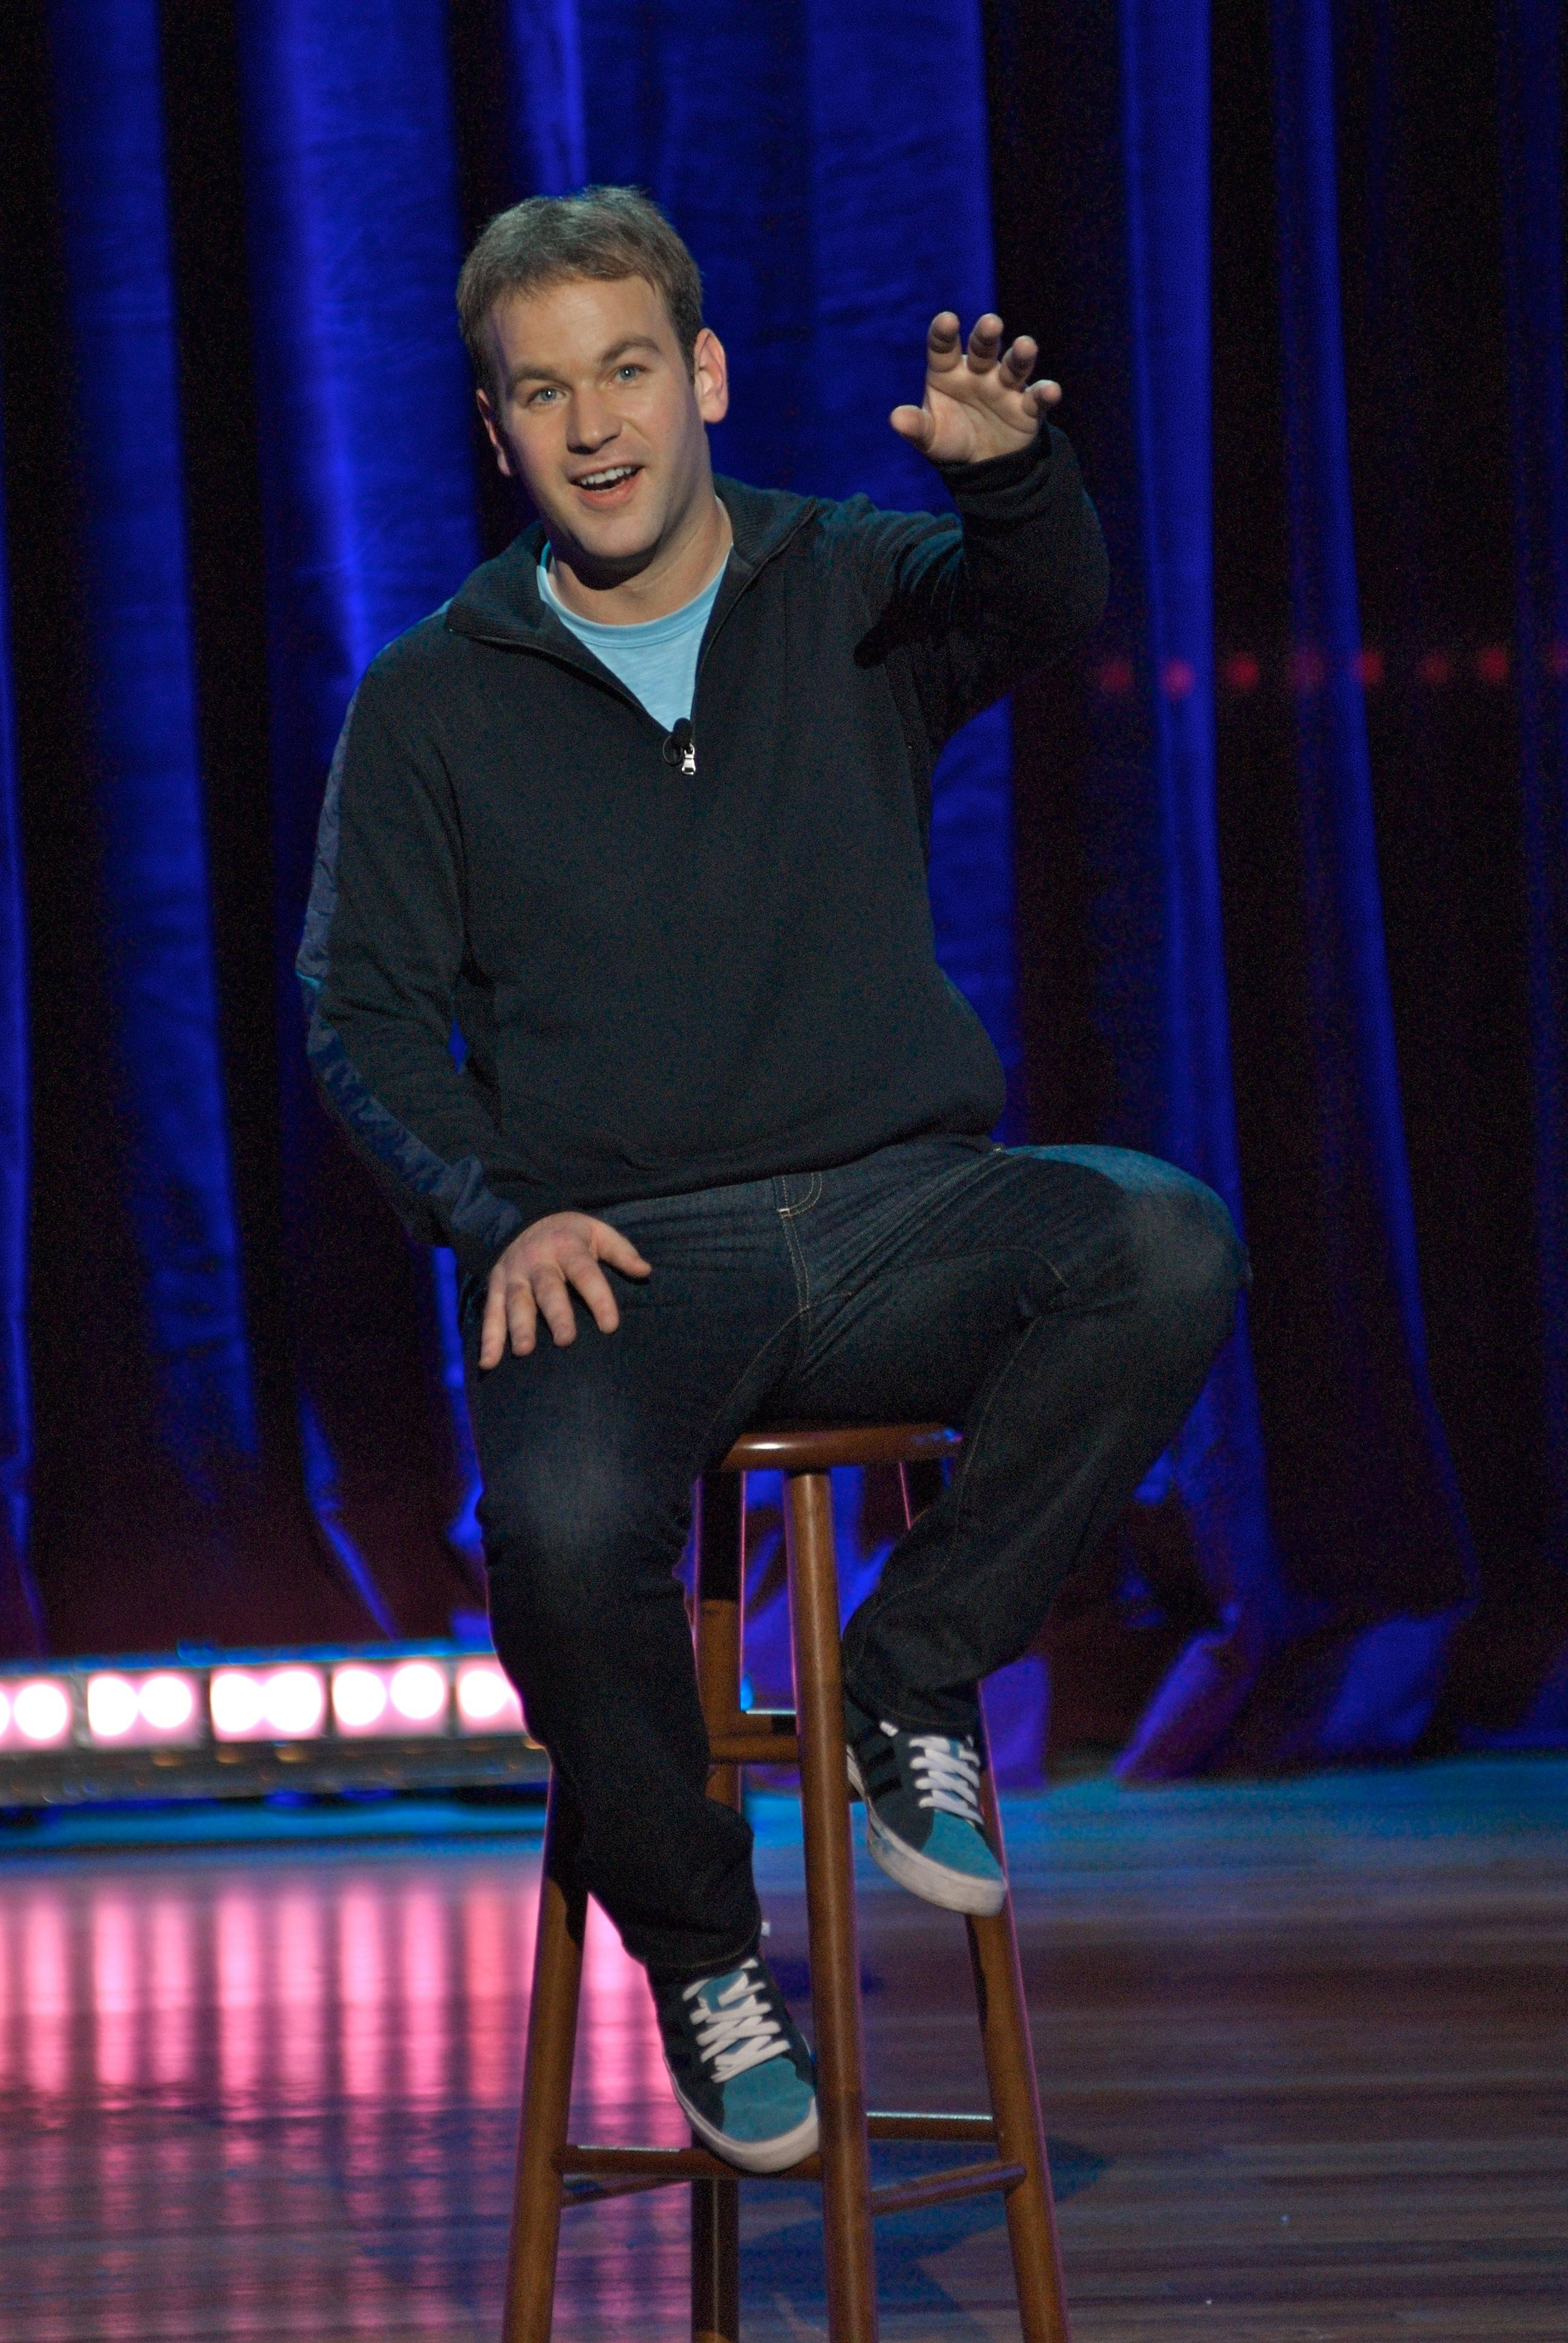 Comedian Mike Birbiglia performs at Belushi Performance Hall at College of DuPage's McAninch Arts Center in Glen Ellyn on Friday, March 13.